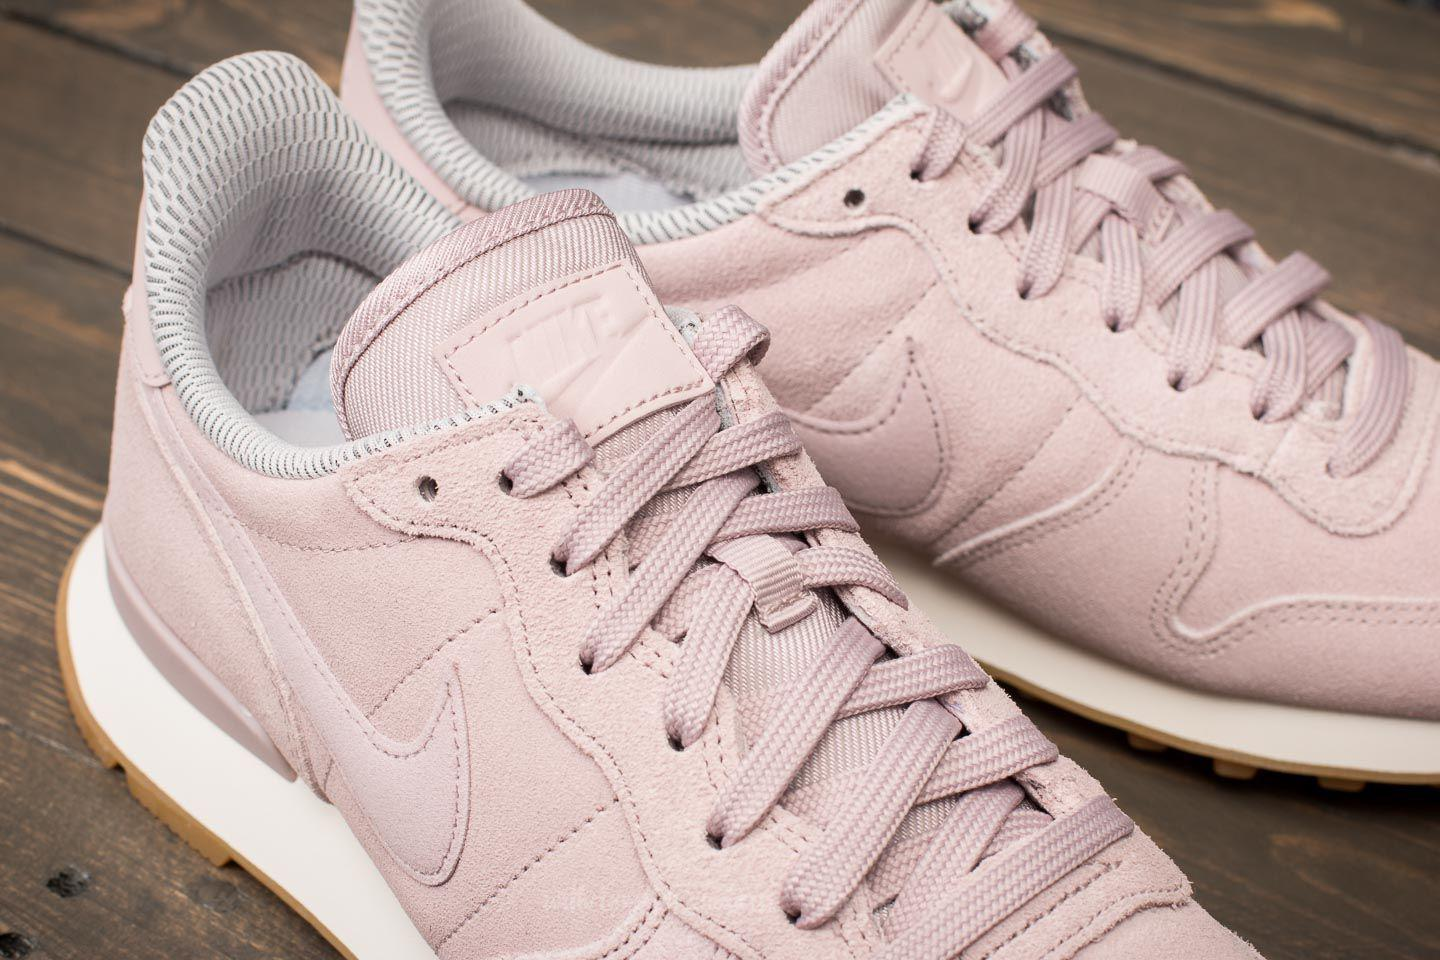 reputable site 9f11f 353e9 ... spain lyst nike w internationalist se particle rose particle rose in  pink 6c5ee 3f035